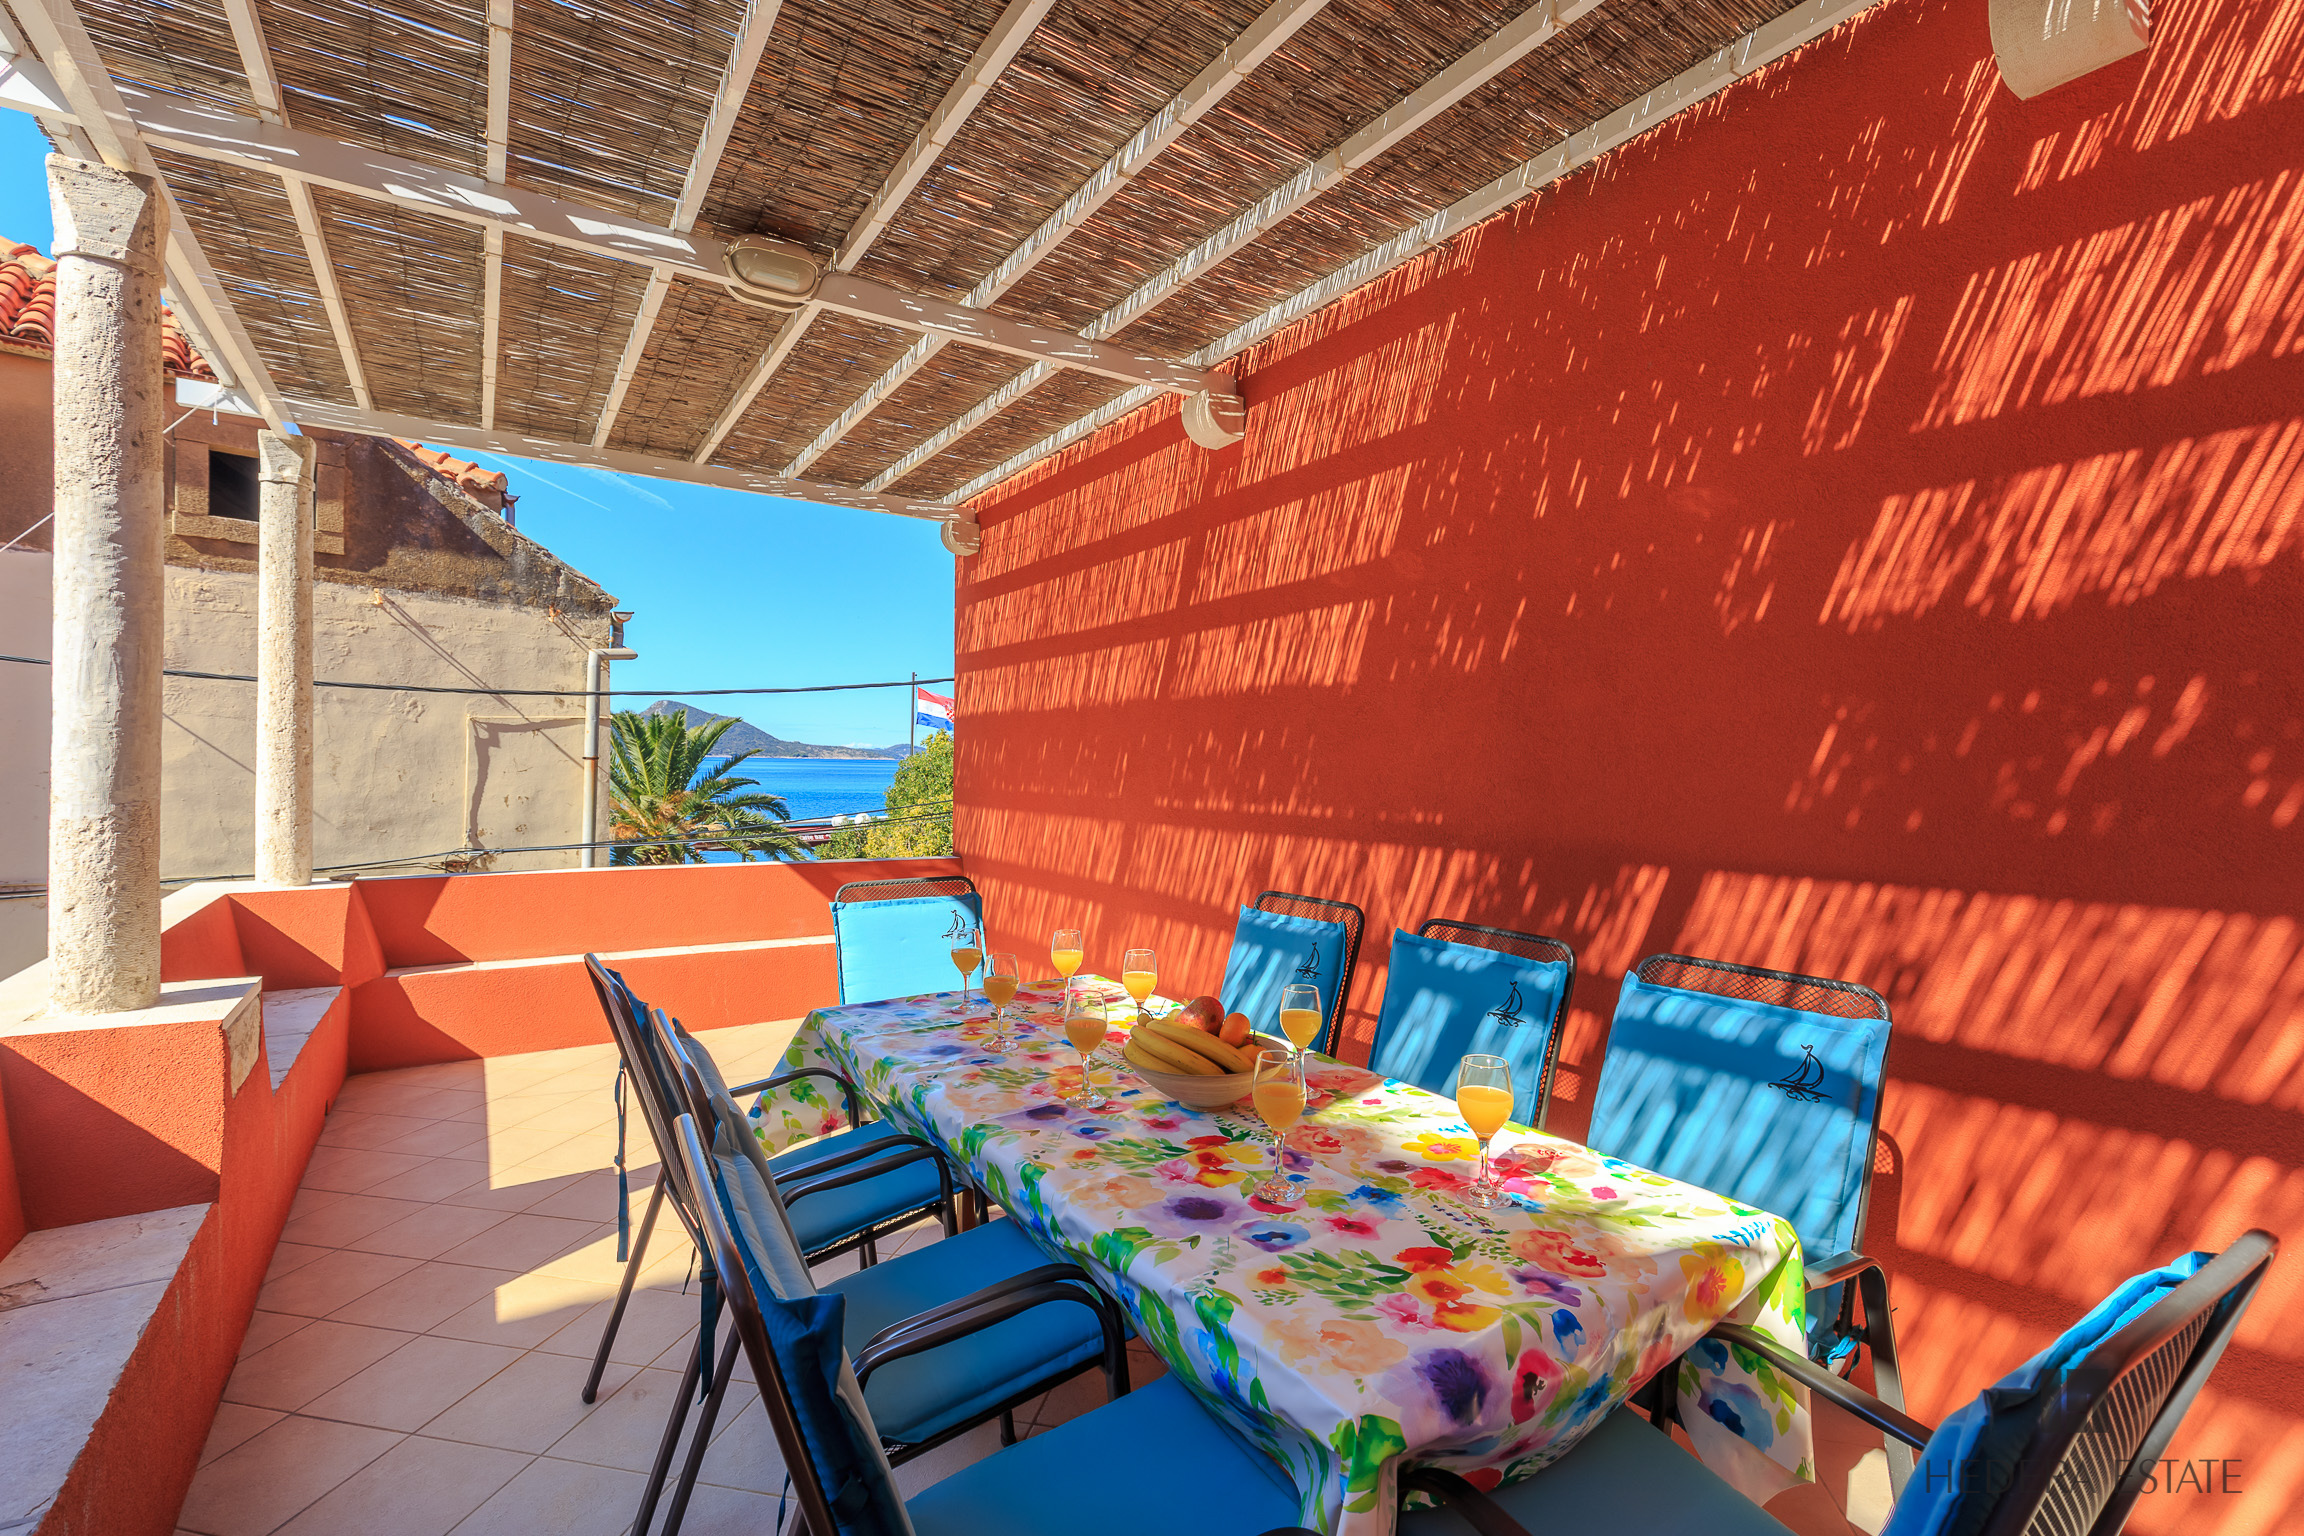 <p>Sleeps 8<br />4 double bedrooms<br />4 bathrooms<br />Large terrace, sea view<br />Located on Island of Kolocep<br />Distance from Dubrovnik: 20 minutes drive with ferry boat</p>